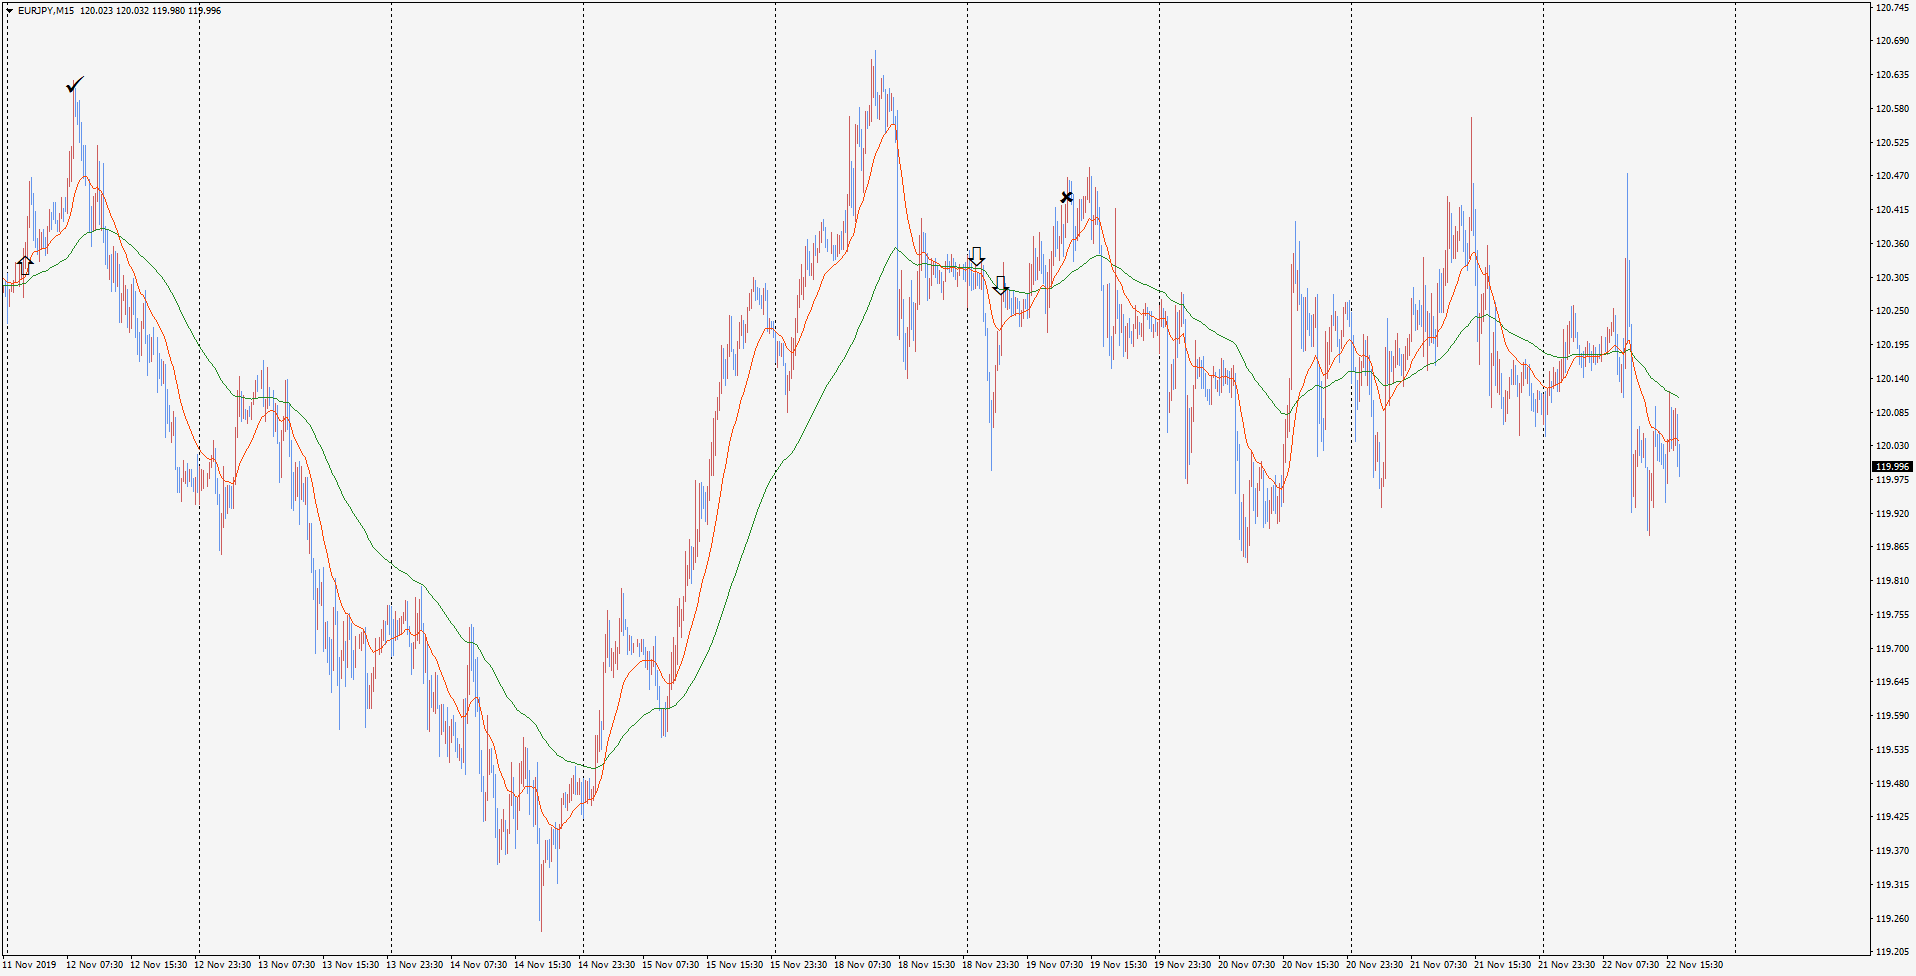 19-11-23-eurjpy-m15-tradexfin-limited.png